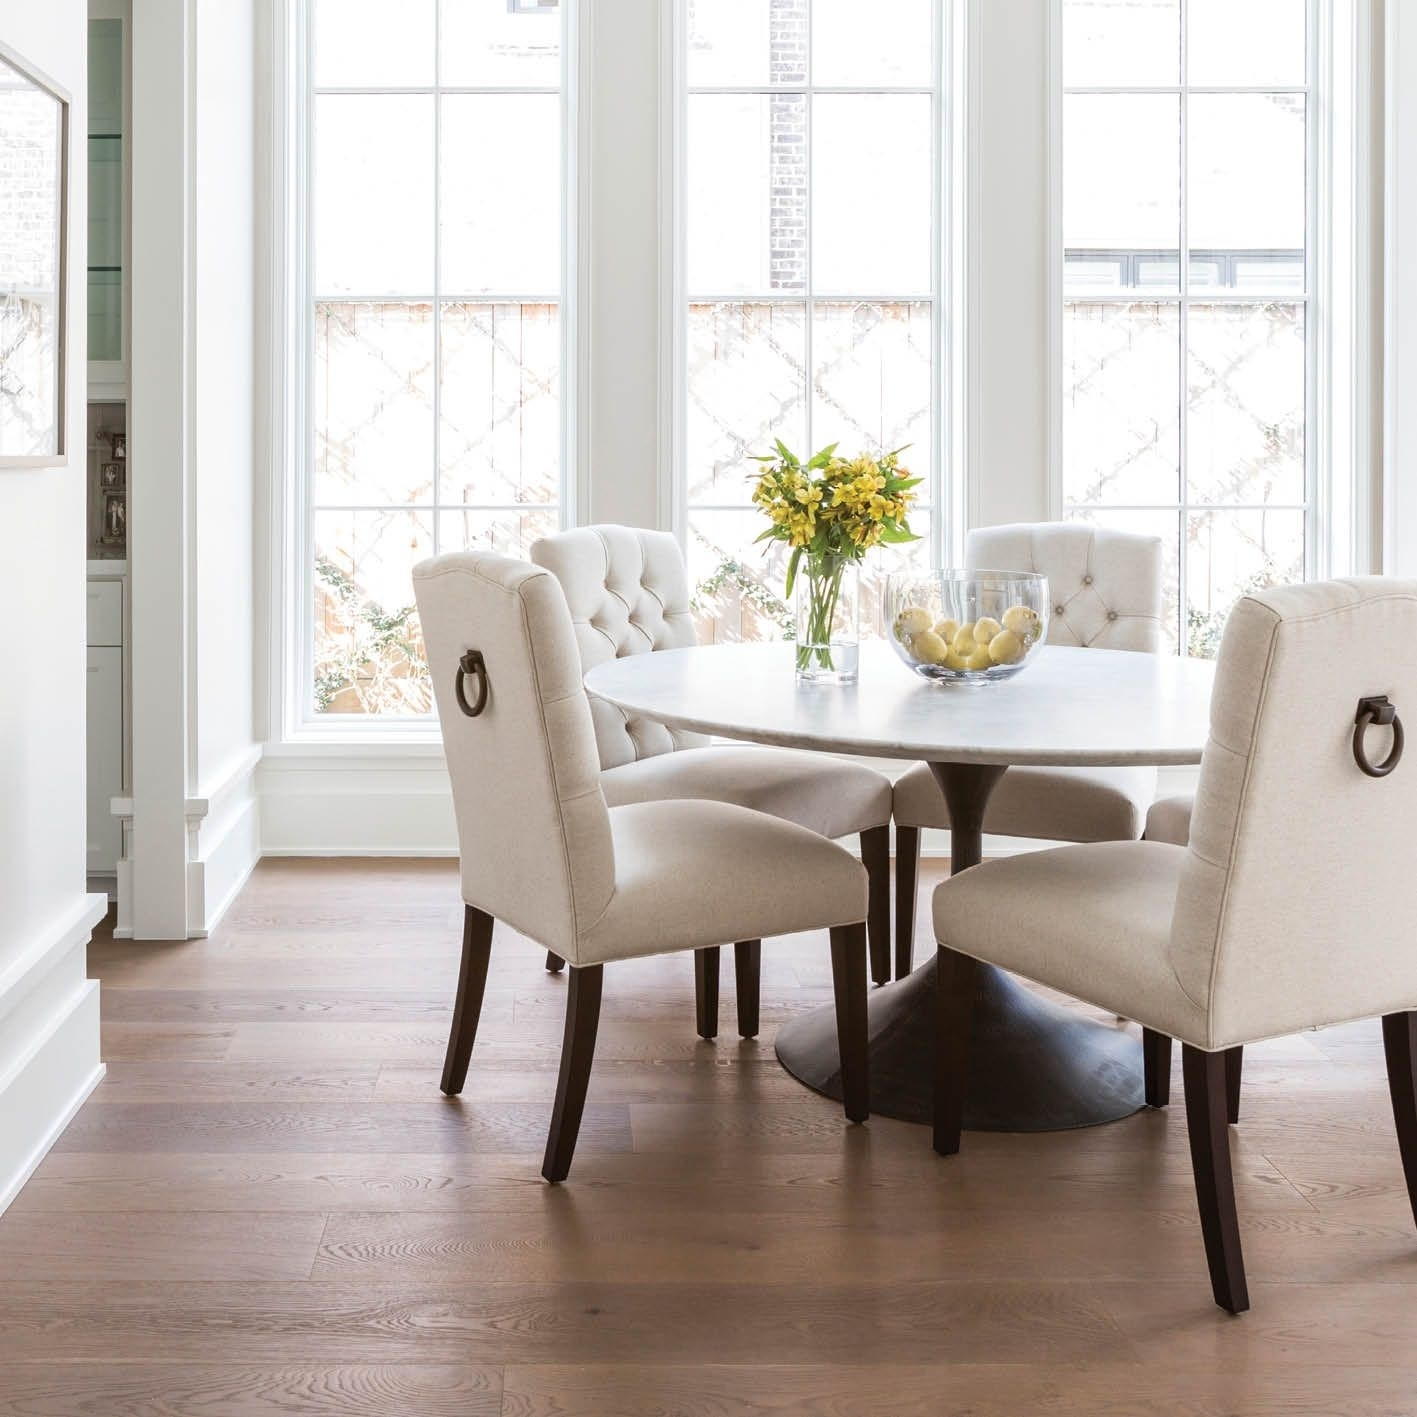 Marie Flanigan Interiors – Citybook Guiding Light – Bright Breakfast For Most Recently Released Caden 5 Piece Round Dining Sets With Upholstered Side Chairs (View 17 of 20)